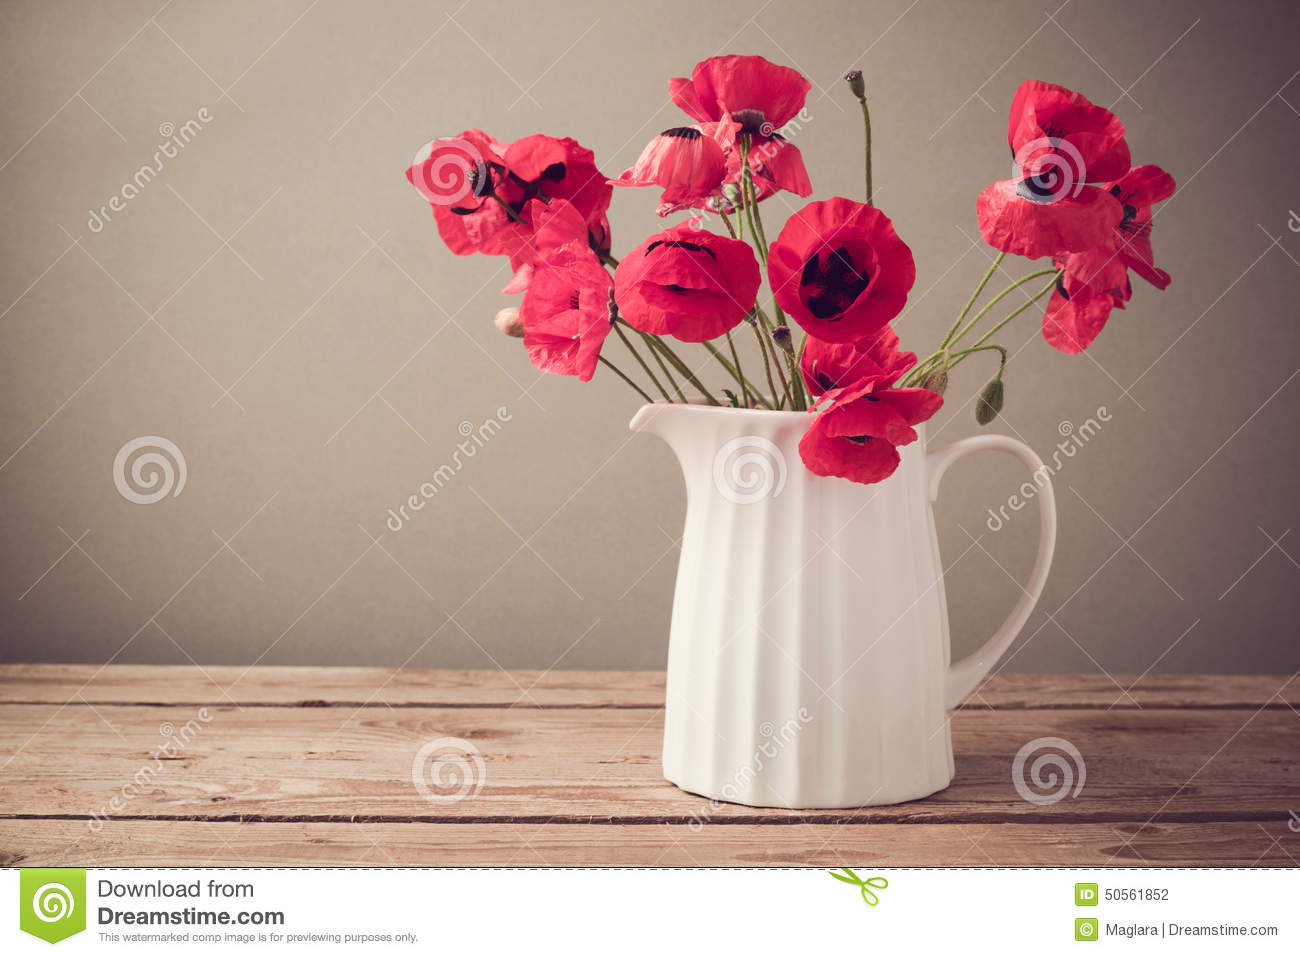 Poppy Flower Bouquet In White Jug On Wooden Table Stock Photo